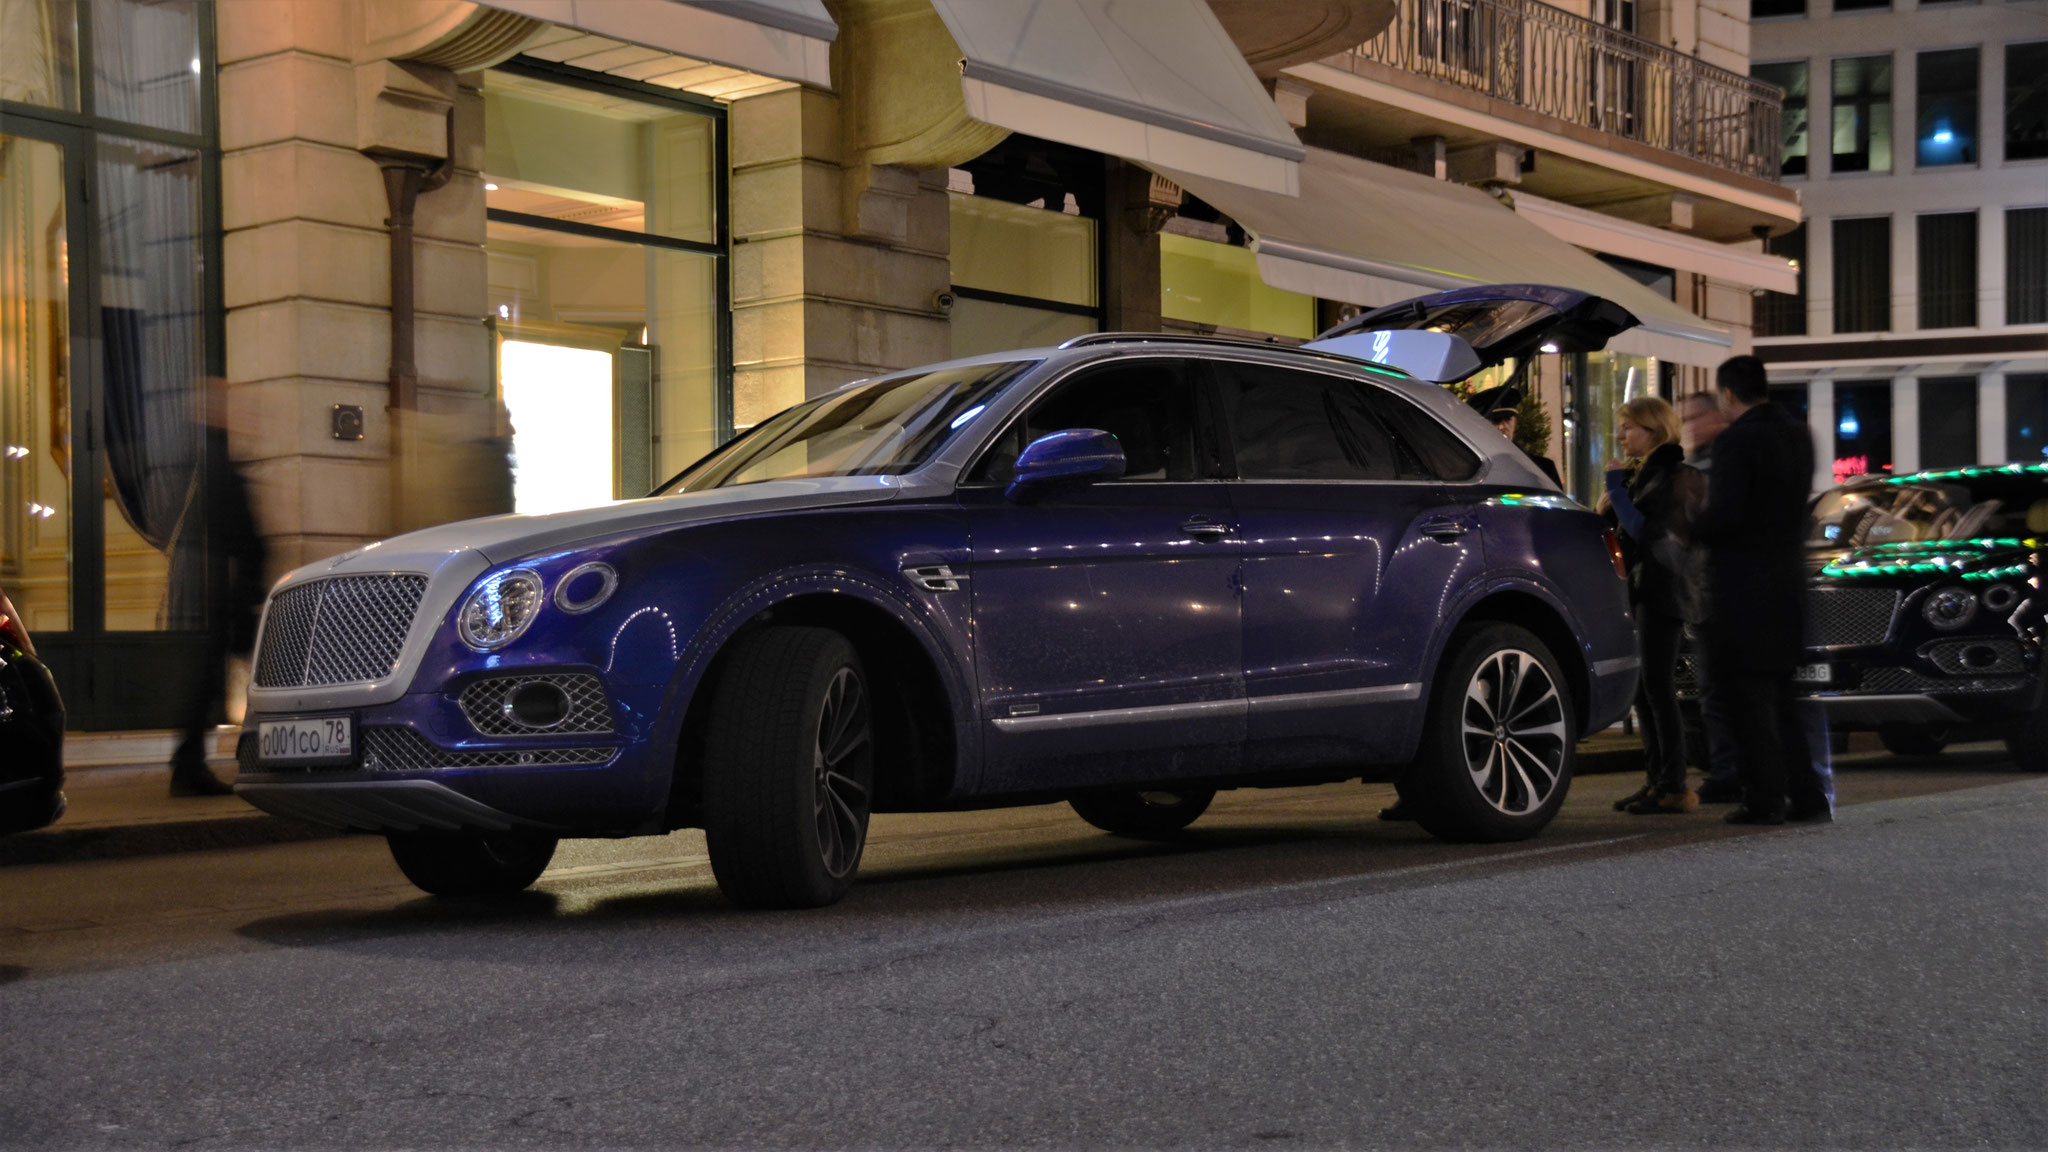 Bentley Bentayga - O-001-CO-78 (RUS)